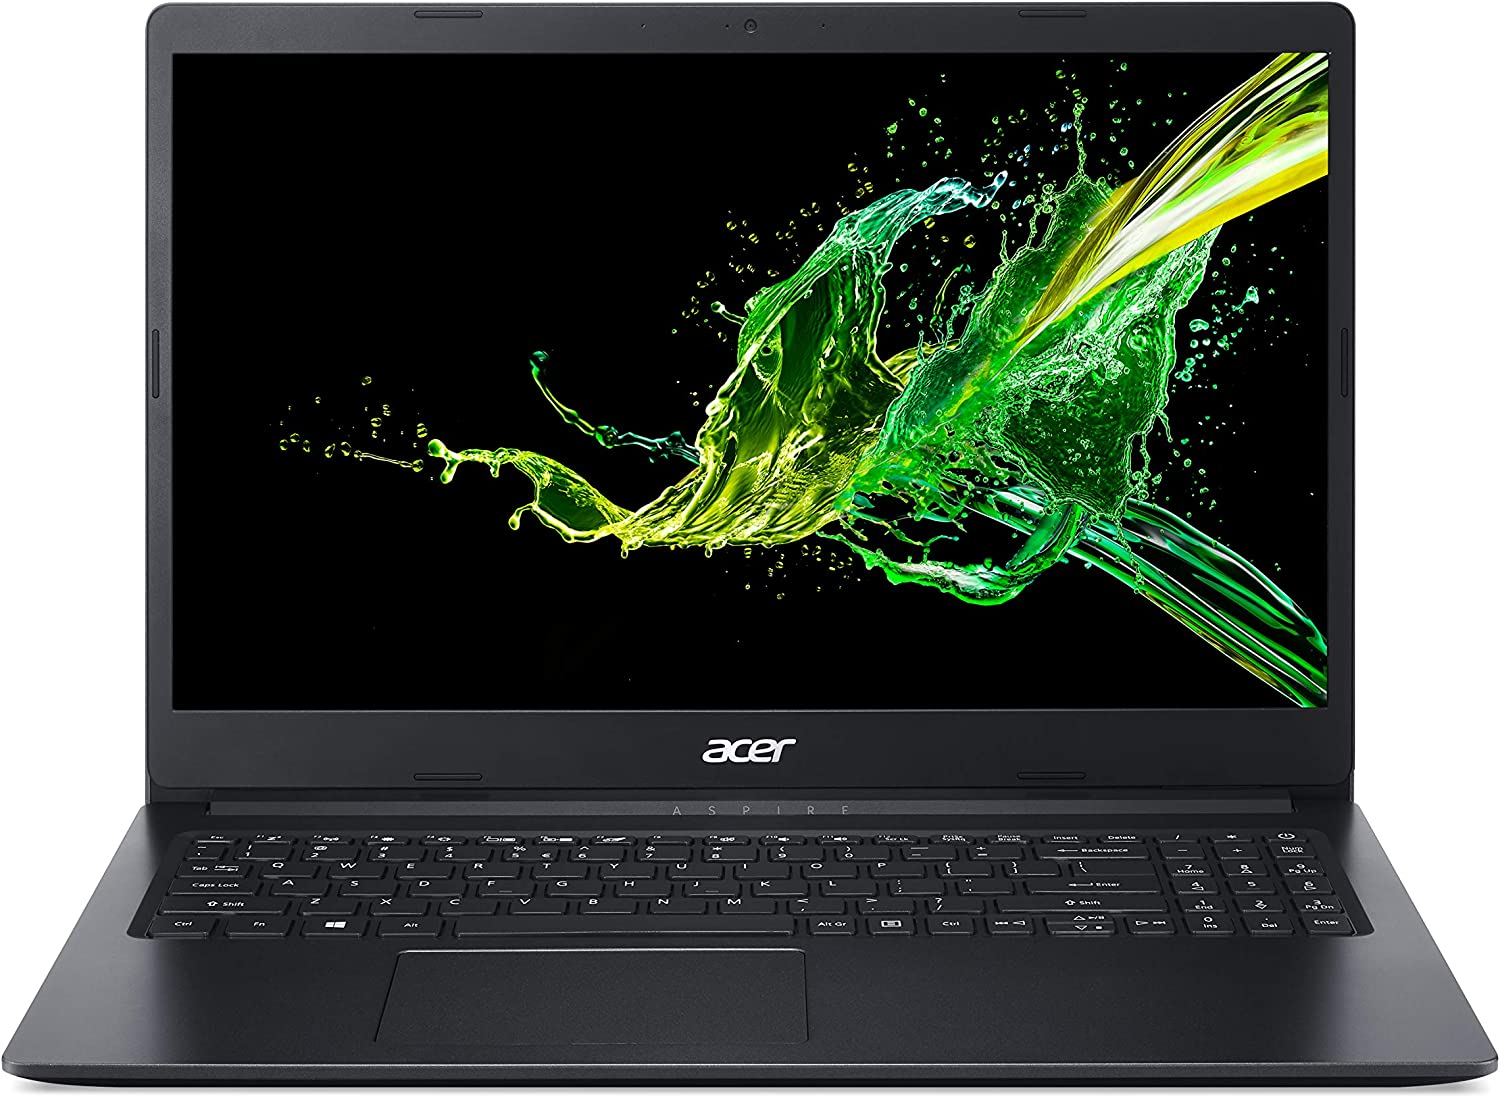 "Acer Aspire 1 A115-31-C2Y3, 15.6"" Full HD Display, Intel Celeron N4020, 4GB DDR4, 64GB eMMC, 802.11ac WiFi 5, Up to 10-Hours of Battery Life, Microsoft 365 Personal, Windows 10 in S Mode"